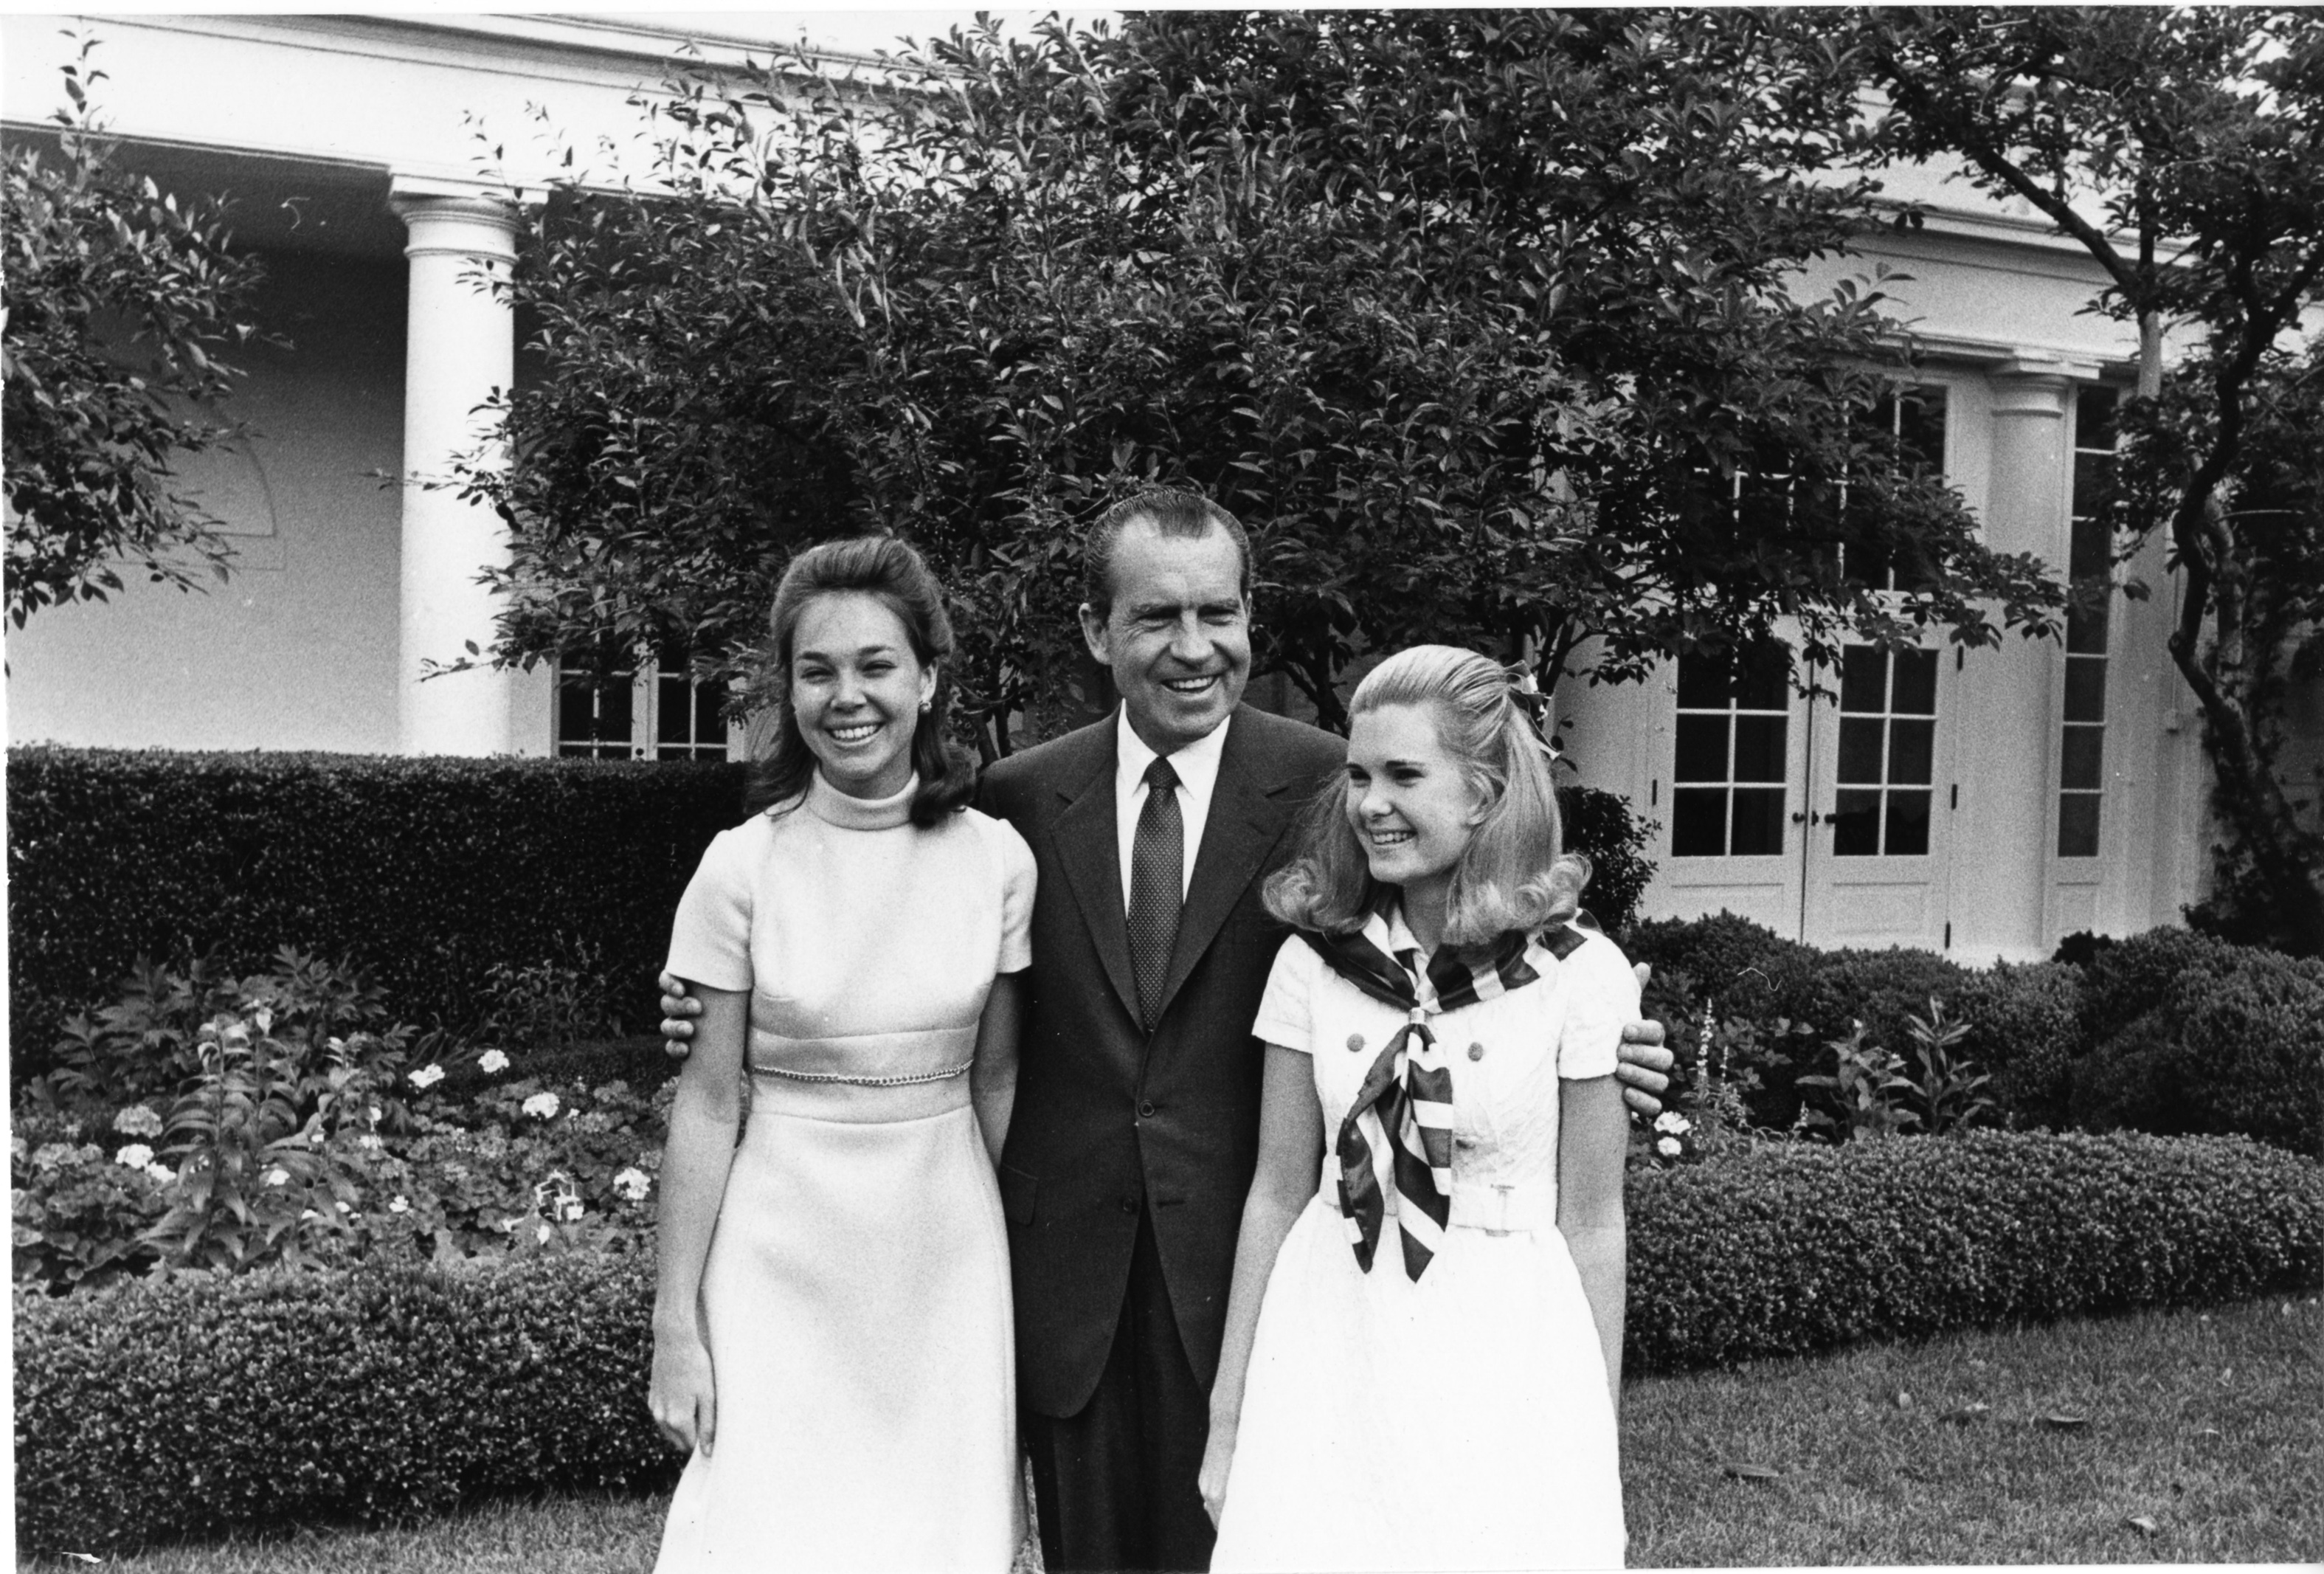 File:Richard Nixon with his daughters.jpg - Wikimedia Commons